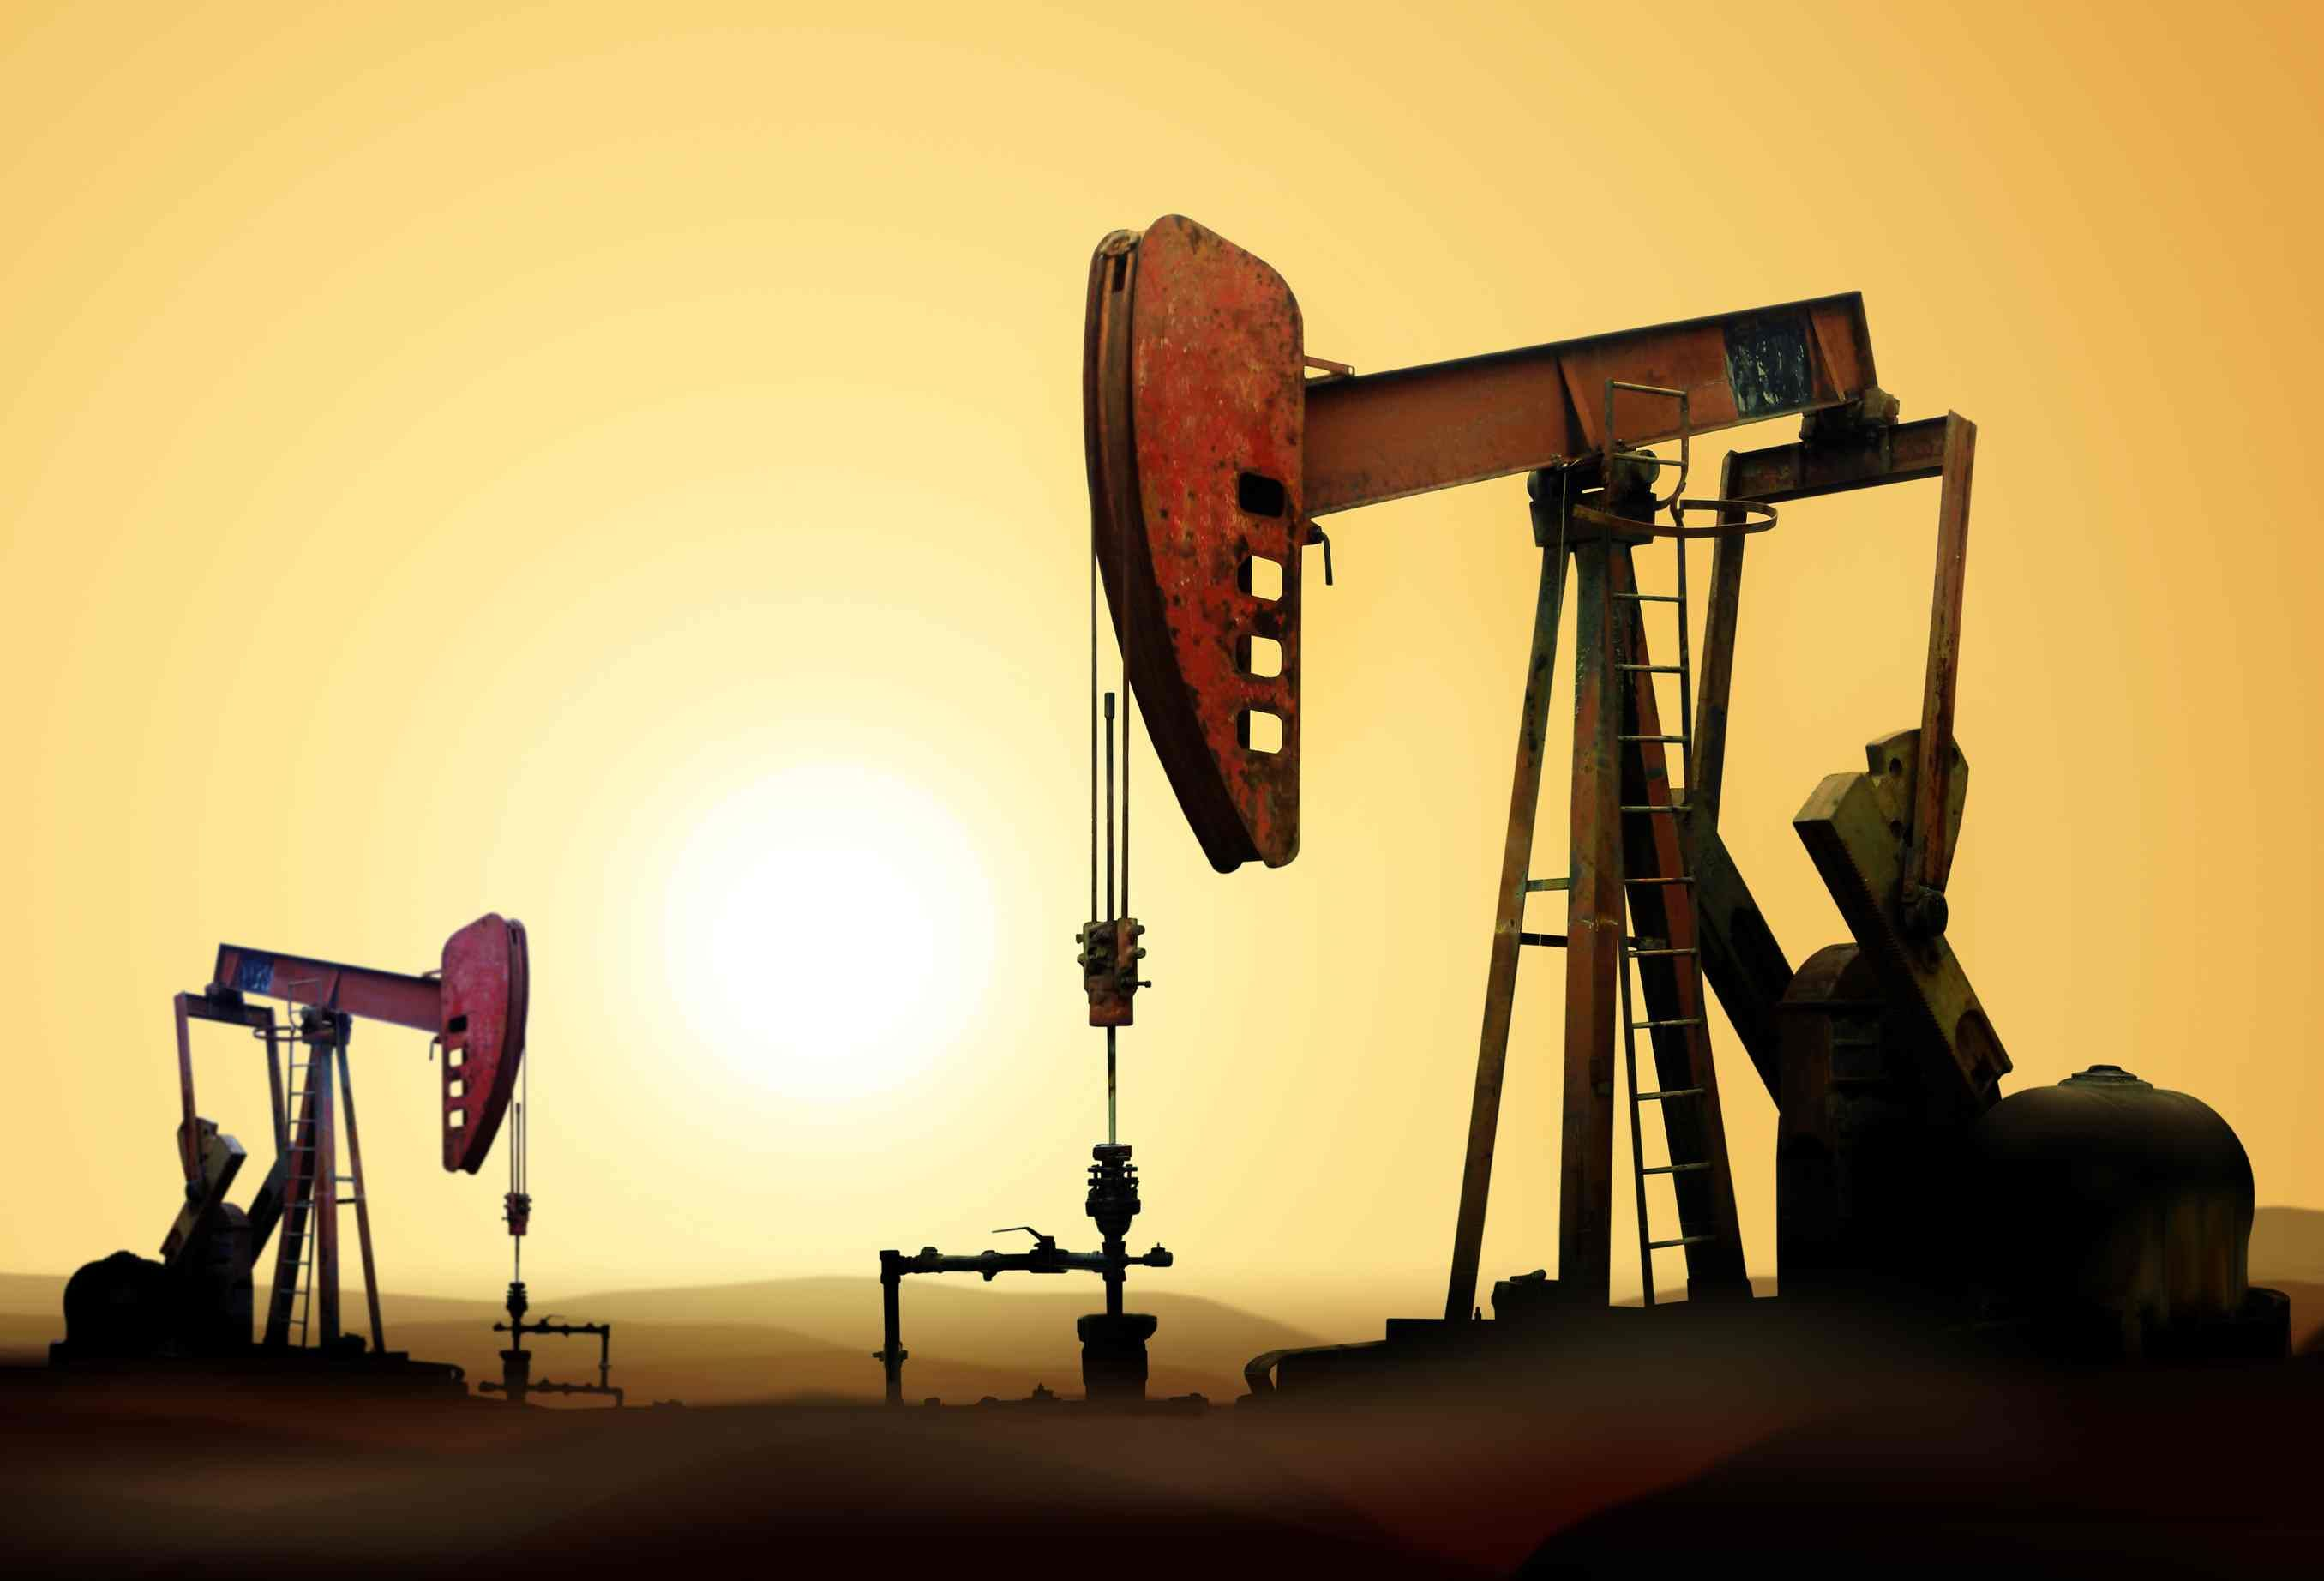 Expert US Has Leveraged Economy Shale Oil Which Saudis May